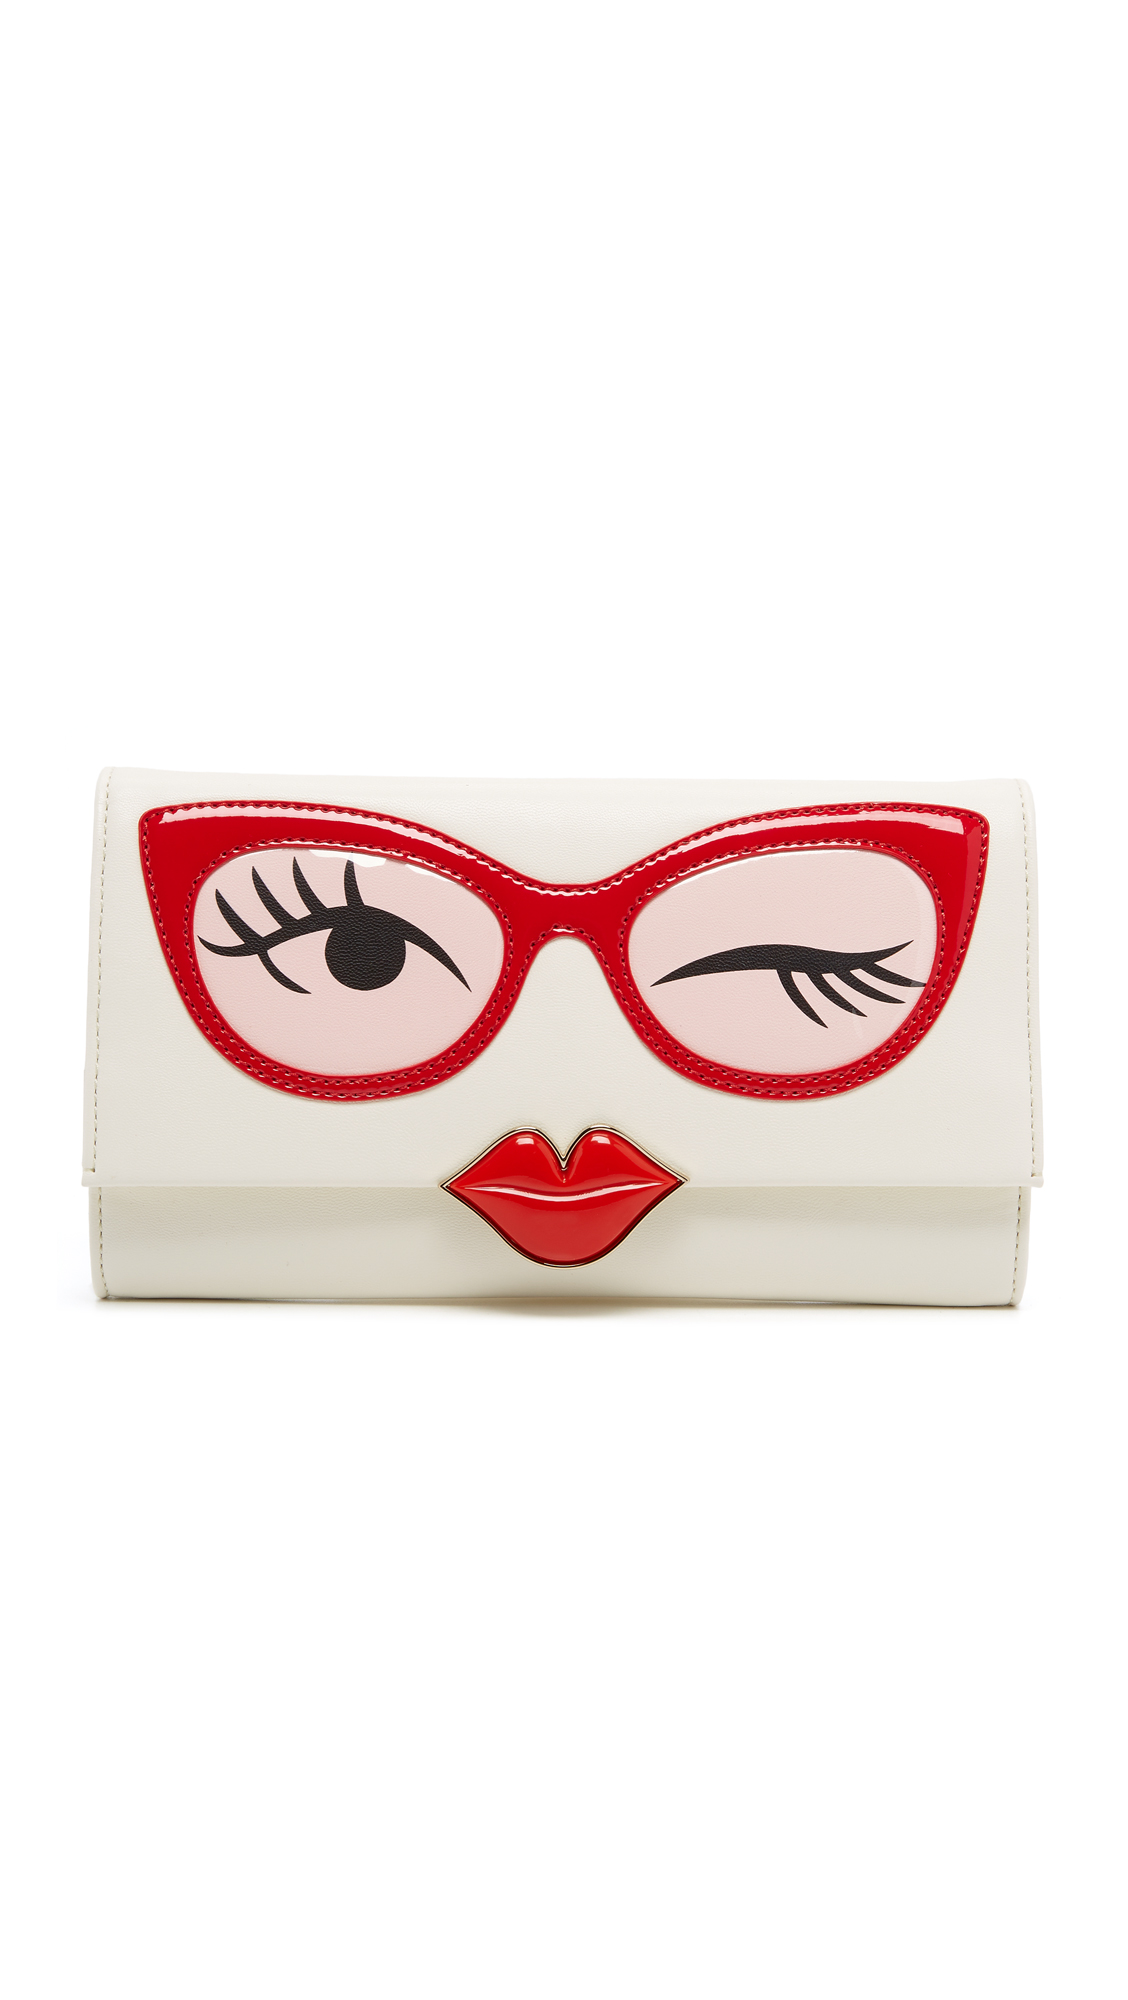 Kate Spade New York Frames Clutch | SHOPBOP